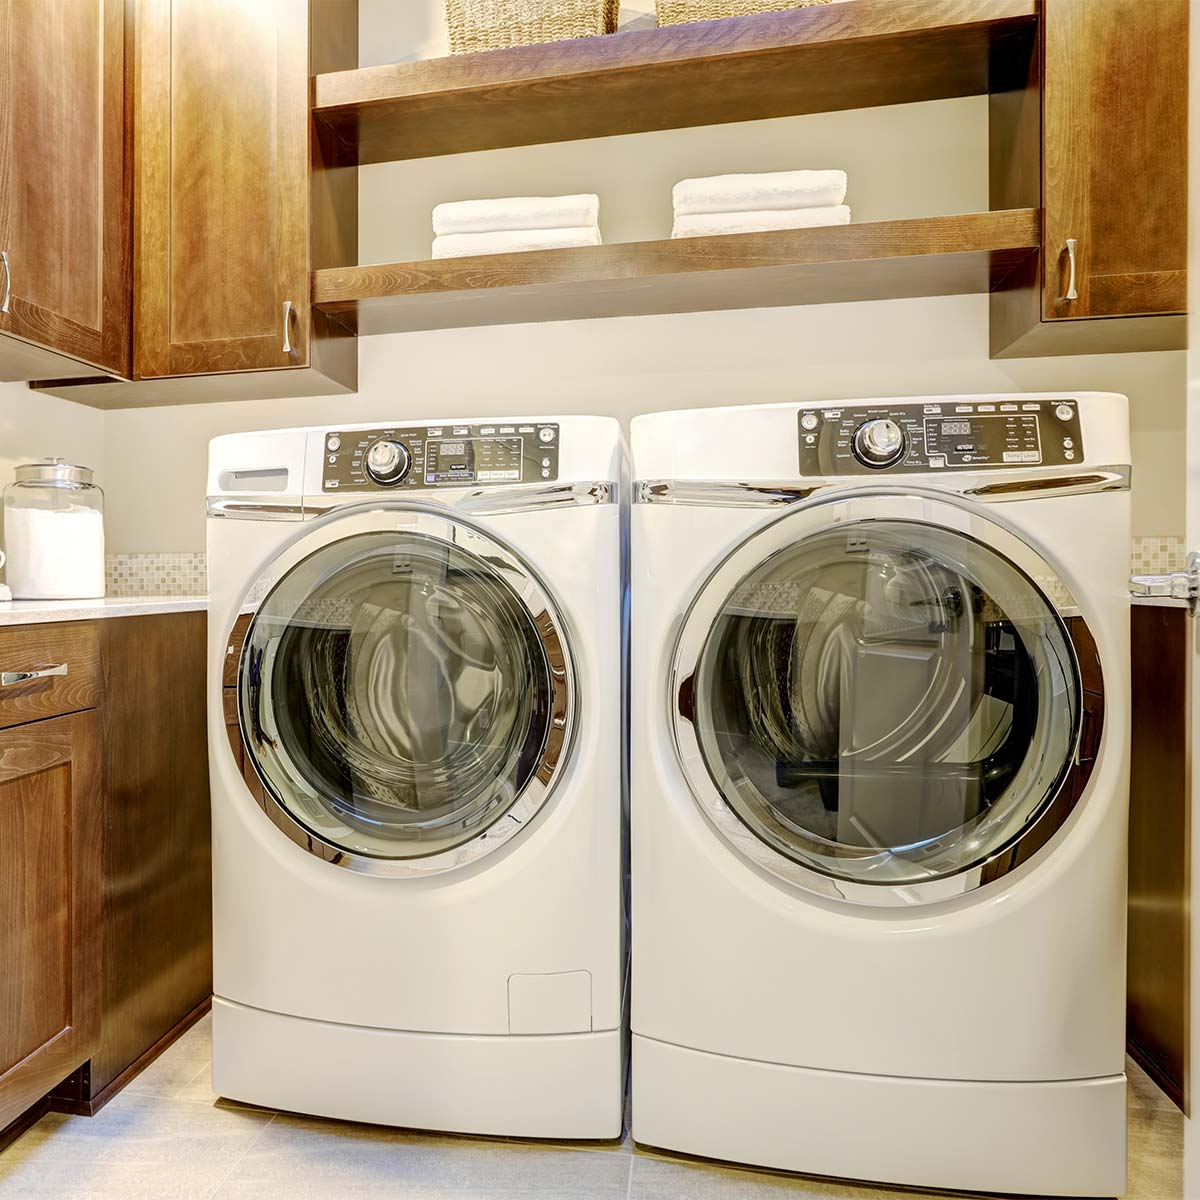 Washer and dryer repair in Chicago, IL